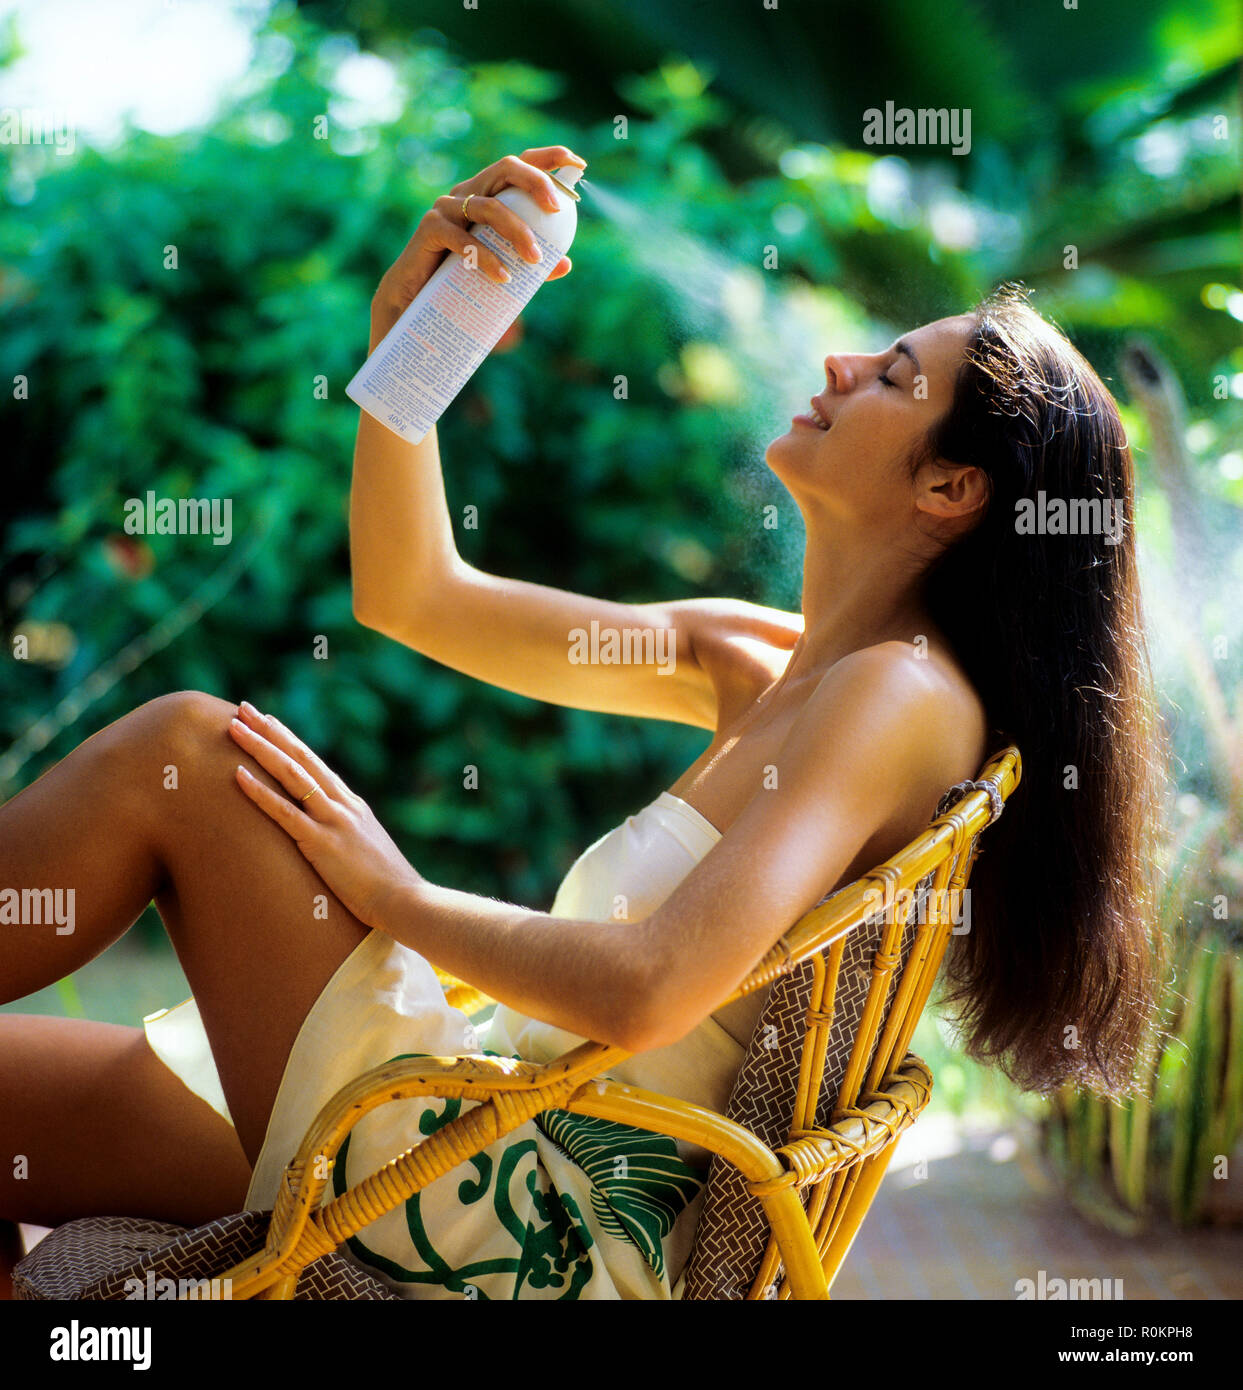 Young woman spraying her face with water atomizer, tropical garden, Guadeloupe, French West Indies, - Stock Image